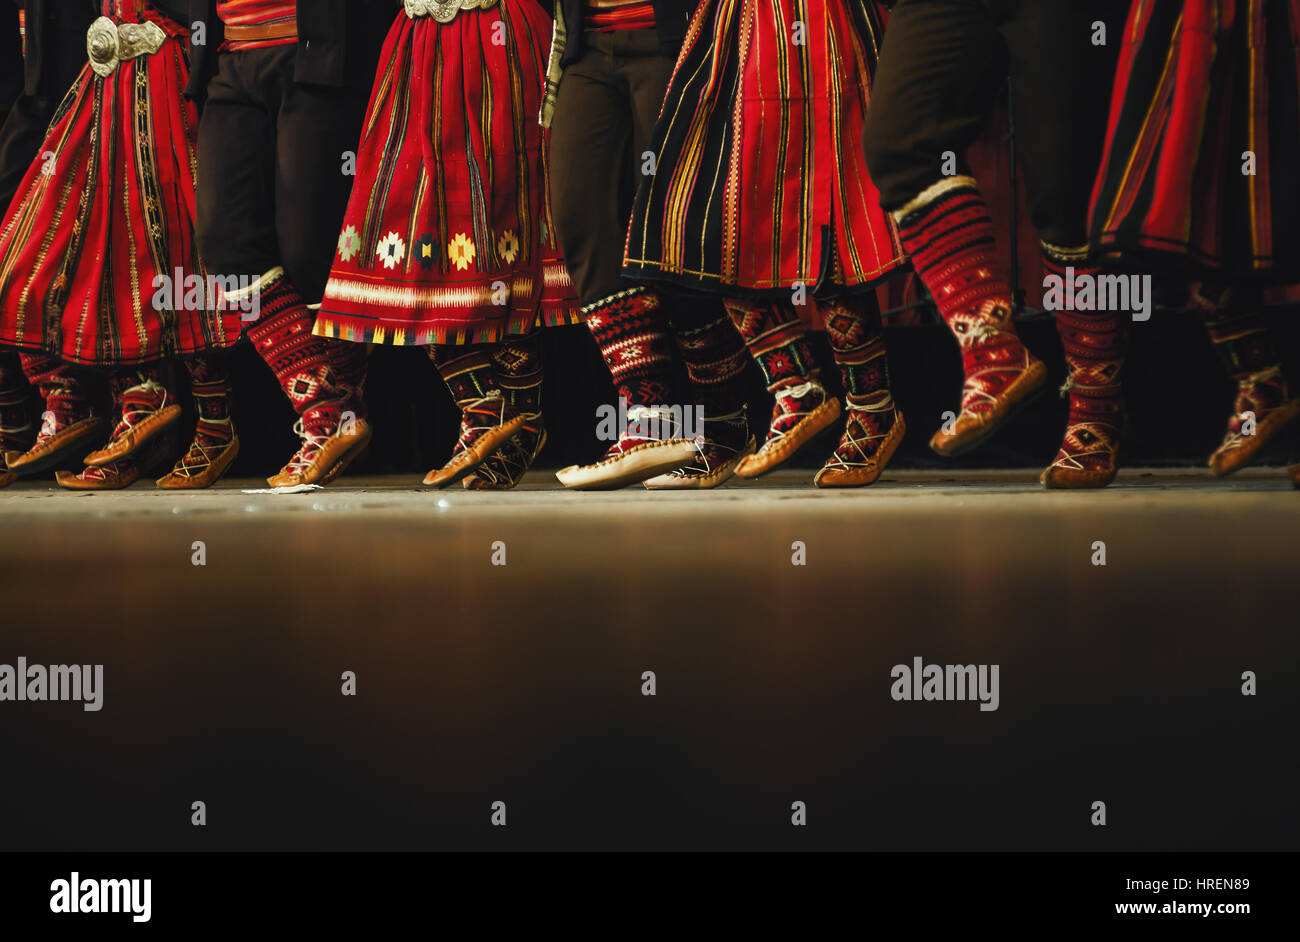 Abstract composition showing legs dressed in Serbian traditional clothe dancing in folklore. - Stock Image